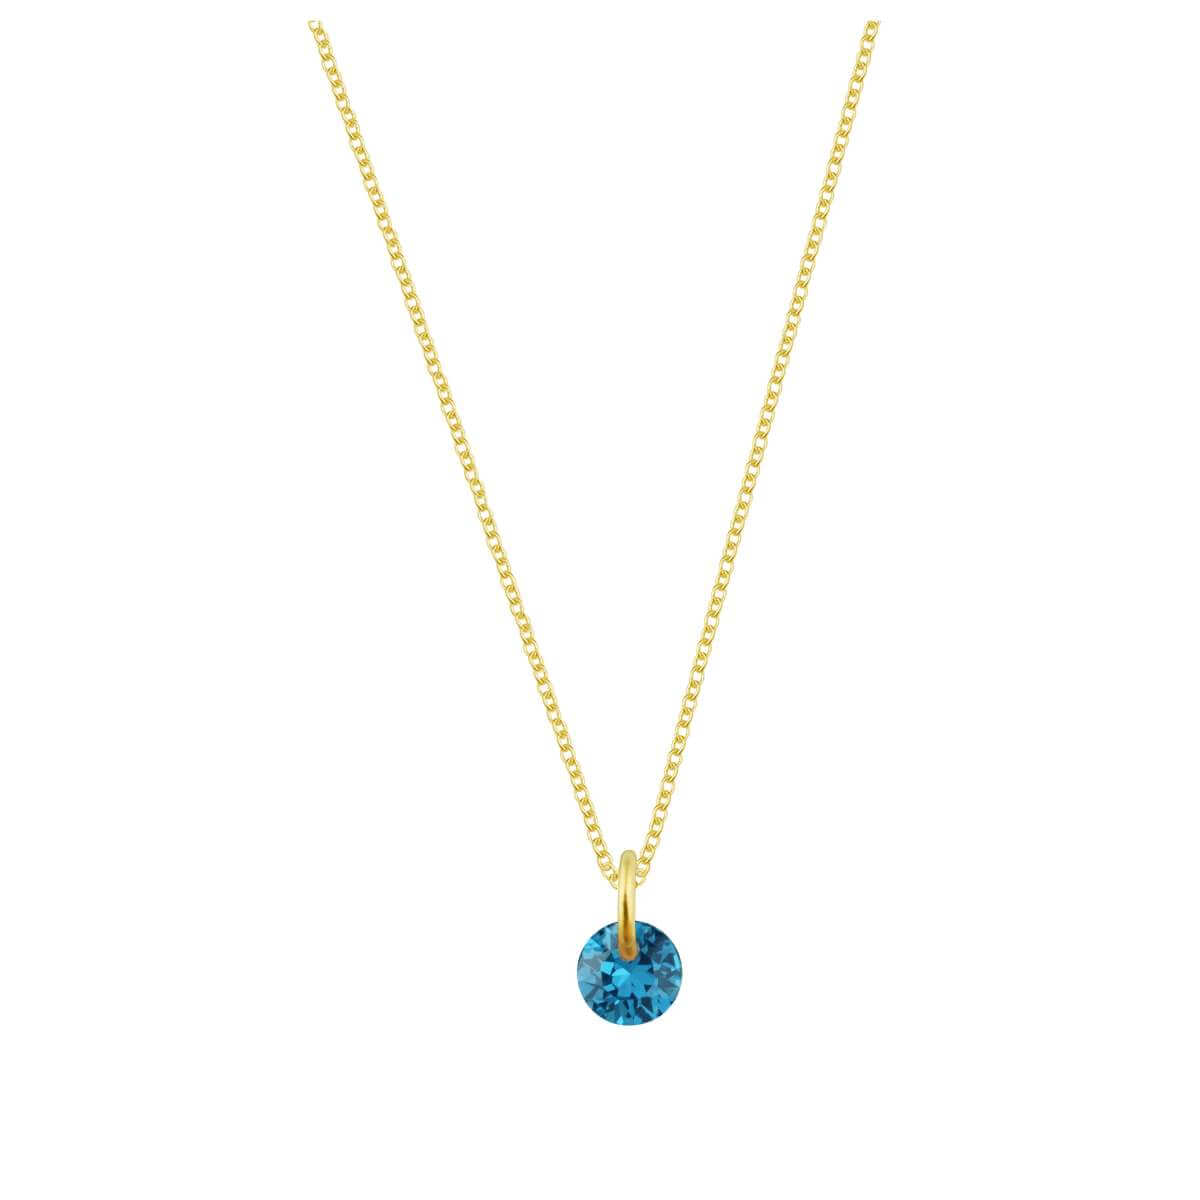 Gold Plated Sterling Silver & 4mm Aquamarine CZ Necklace - 16 - 22 Inches